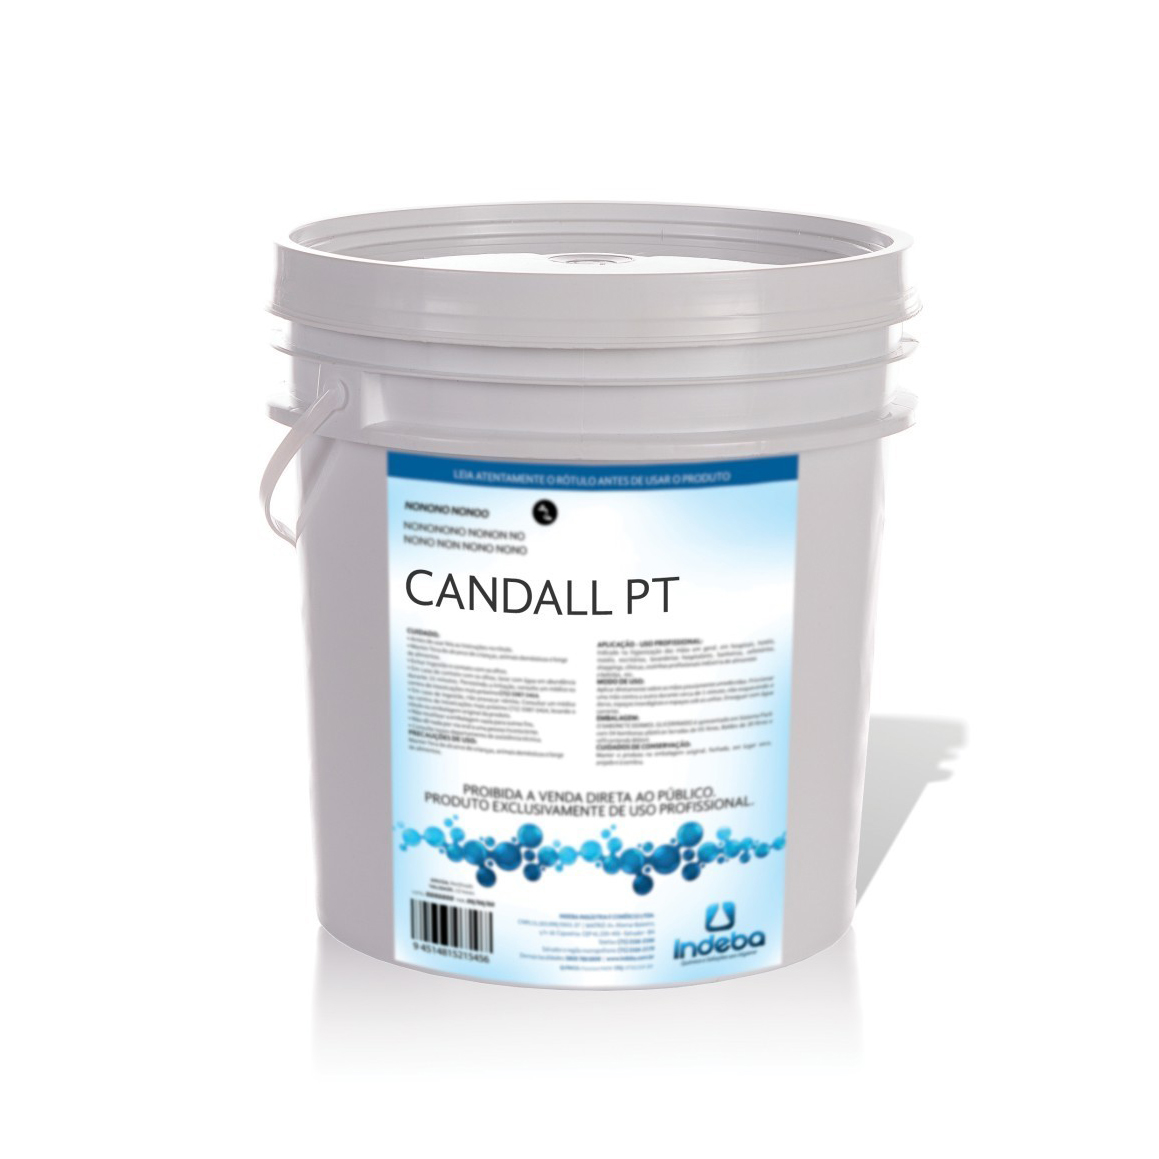 Candall PT